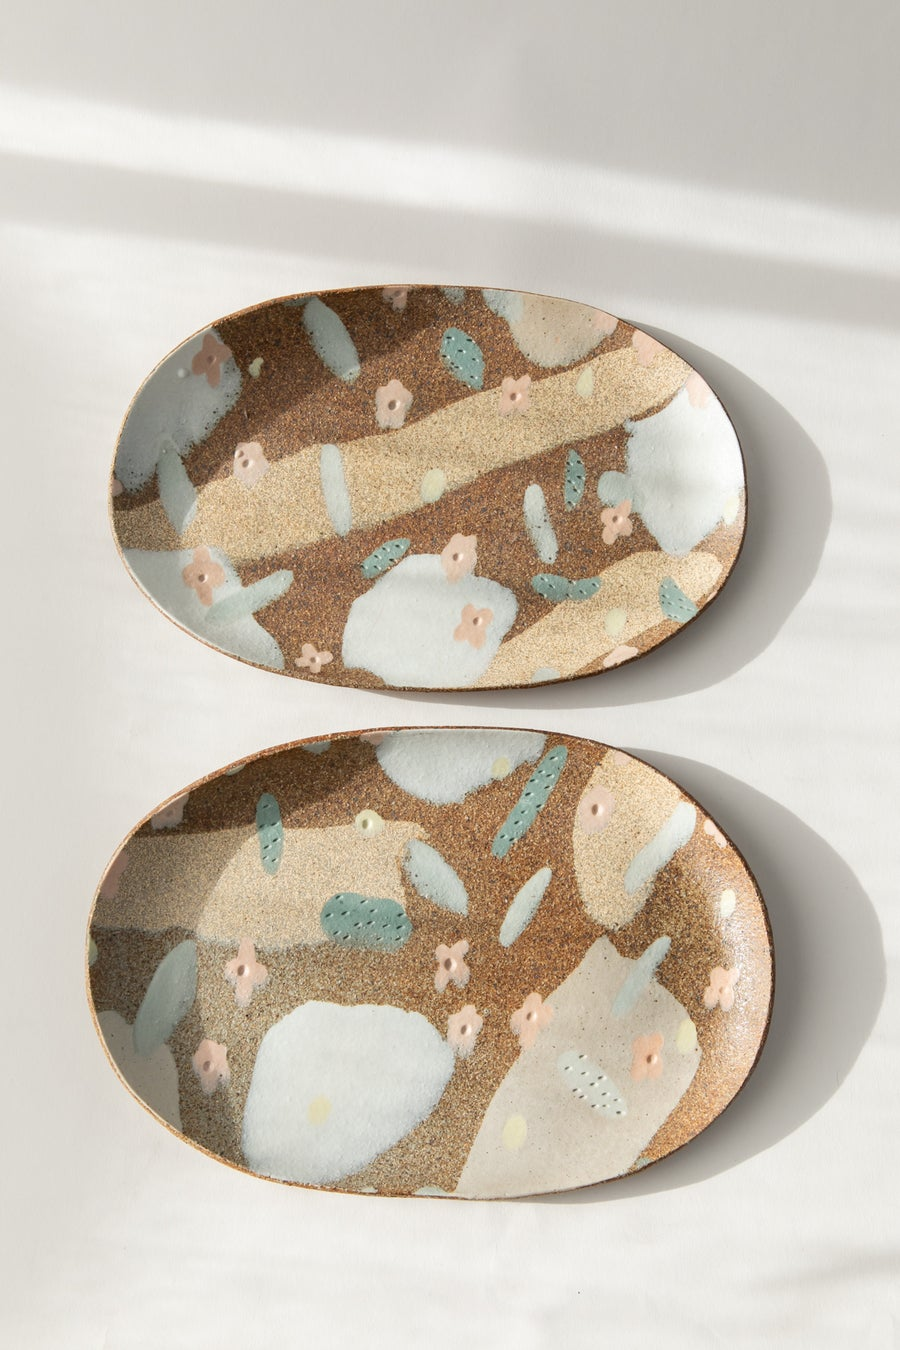 Image of Desert Sand, Peach Flowers and Sage Leaves  - Oval Porcelain Inlay Serving Platter